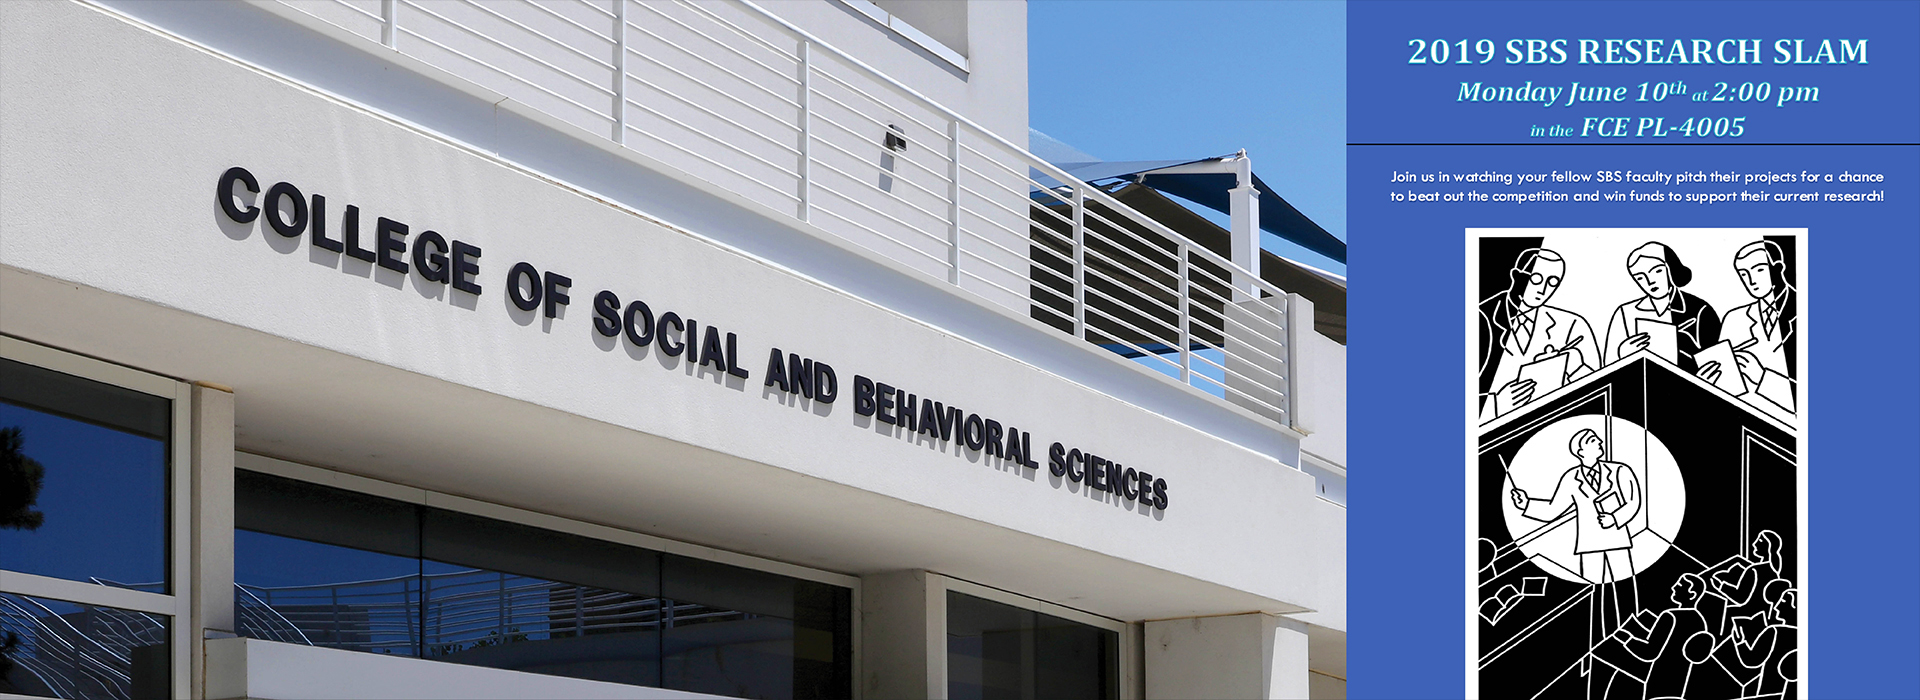 College of Social and Behavioral Sciences faculty to hold 'research slam' on June 10